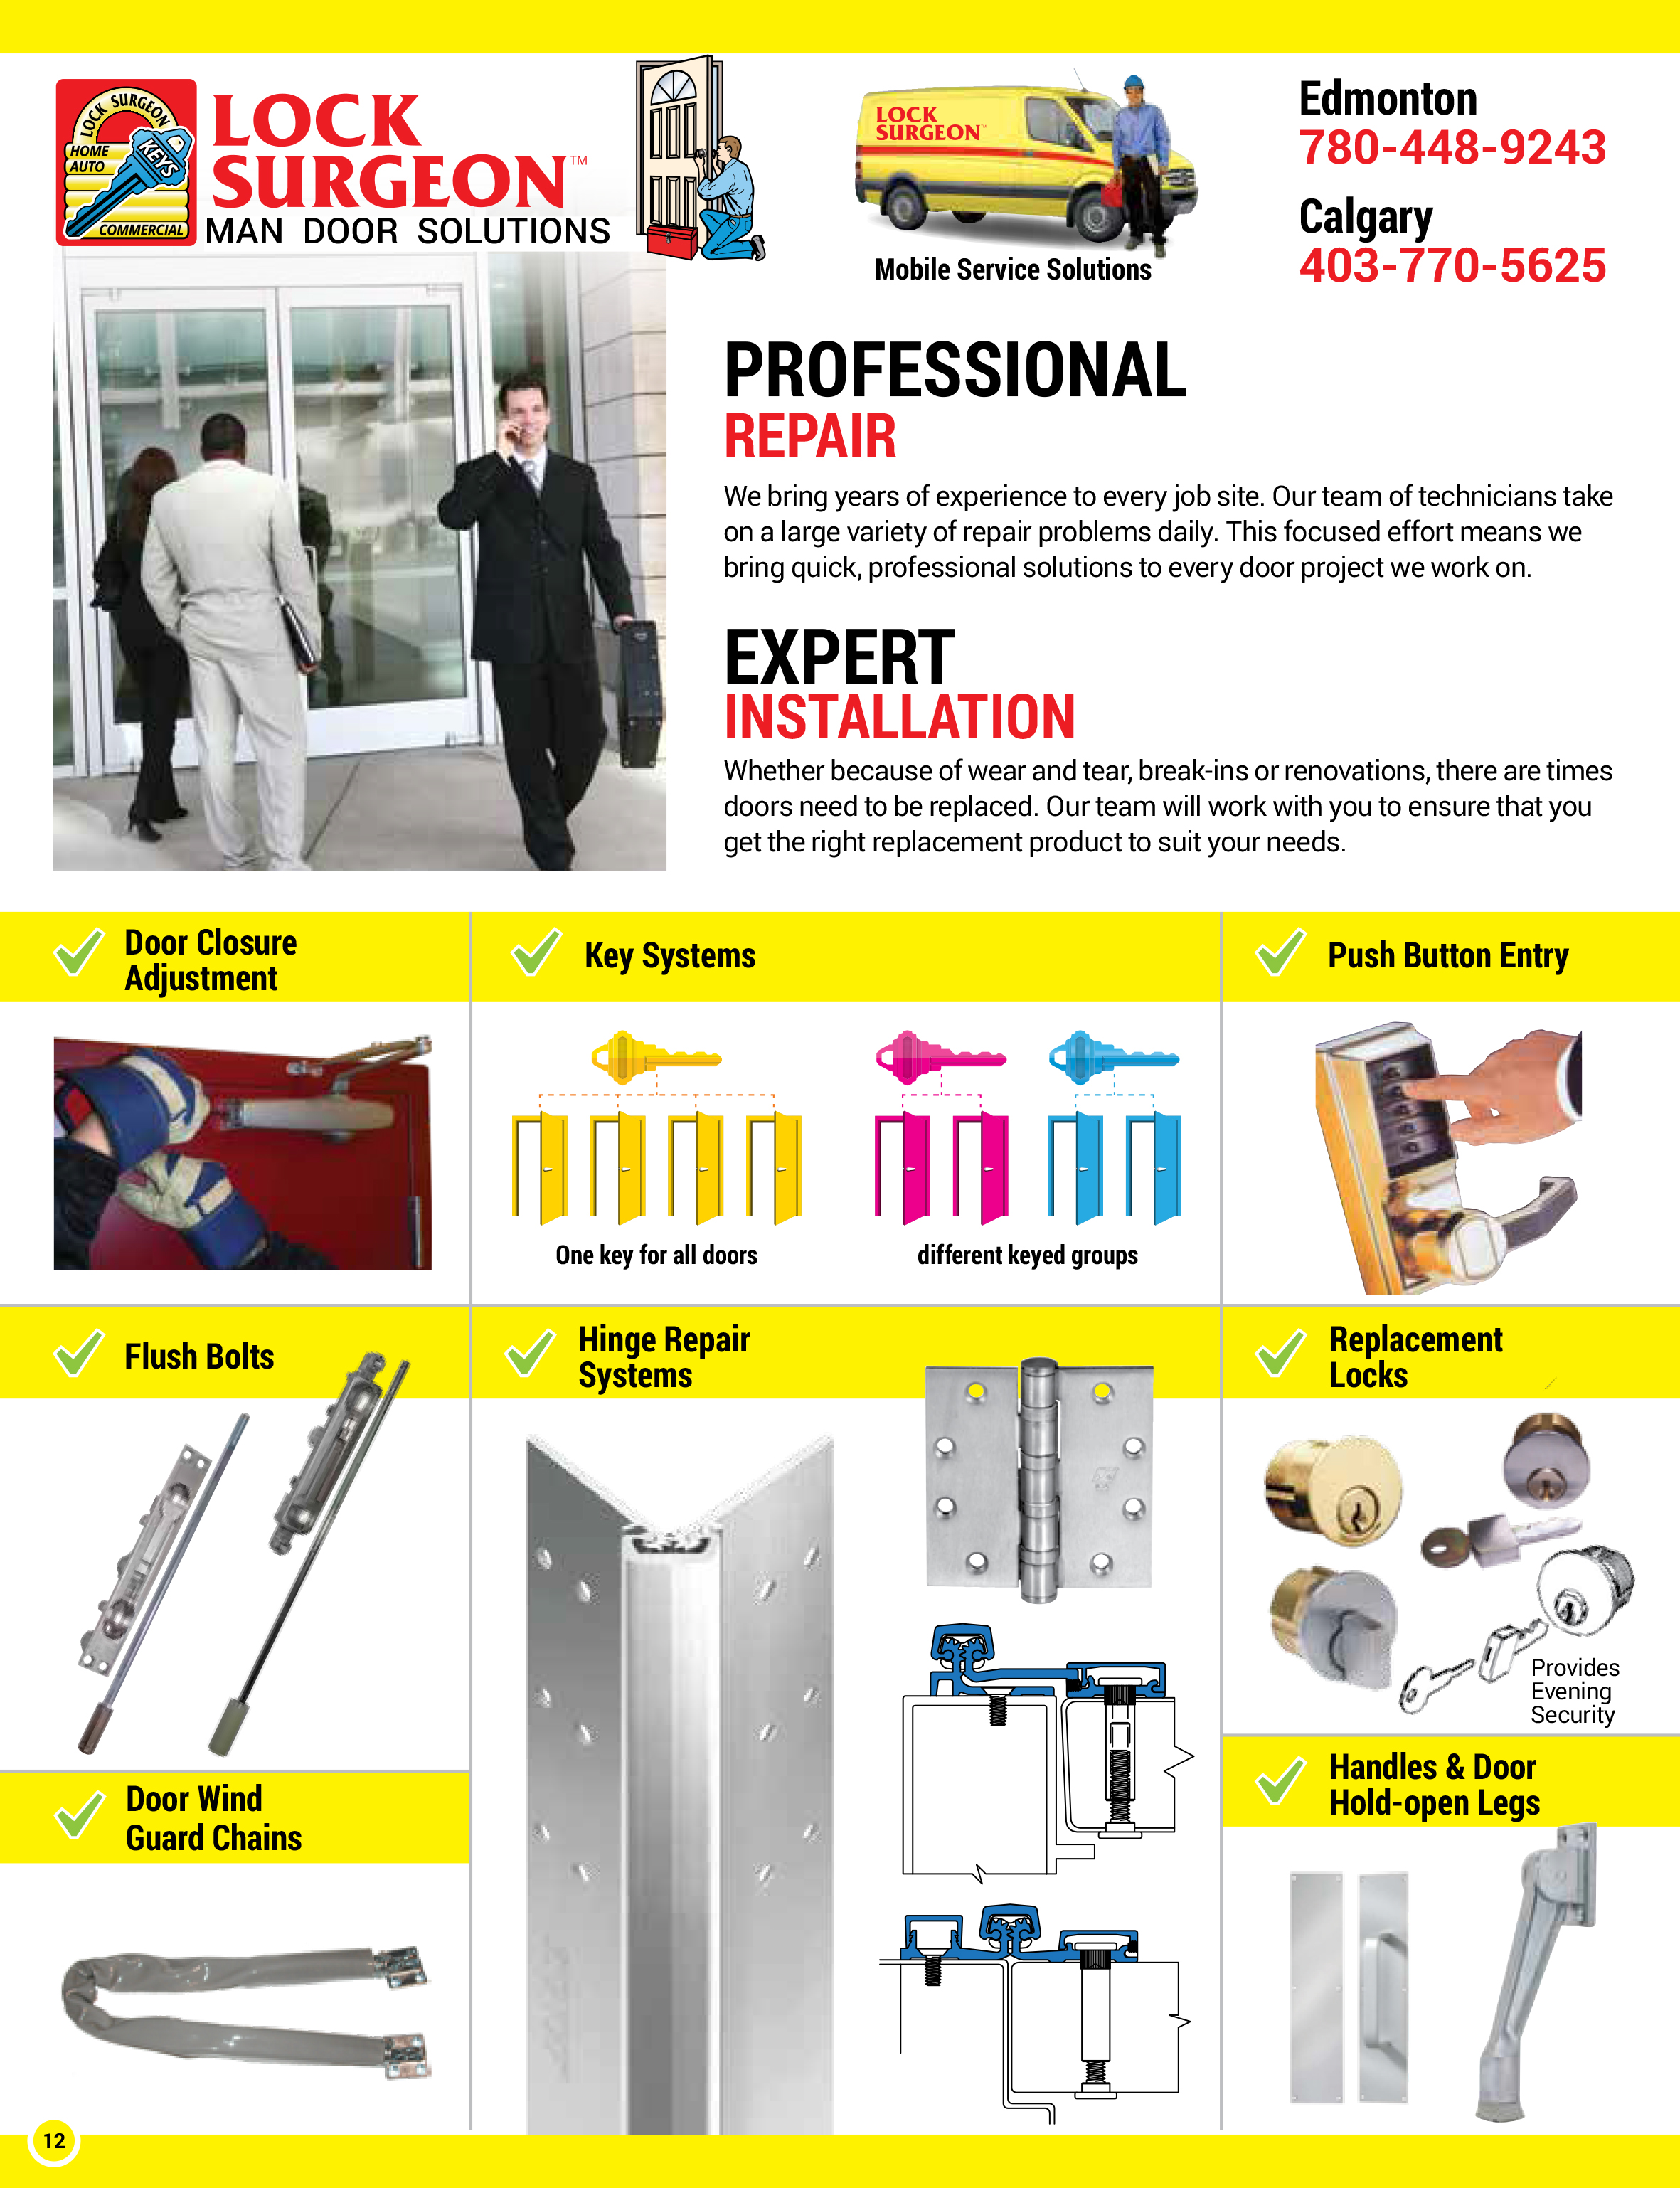 Door Surgeon brings years of experience to every job. Our team of door technicians take on the large variety of door repair problems. This focused effort means we bring fast mobile professional door solutions to your home or business. Door break-in repairs or door renovations our team will ensure that you get the correct door replacement products to meet your needs.